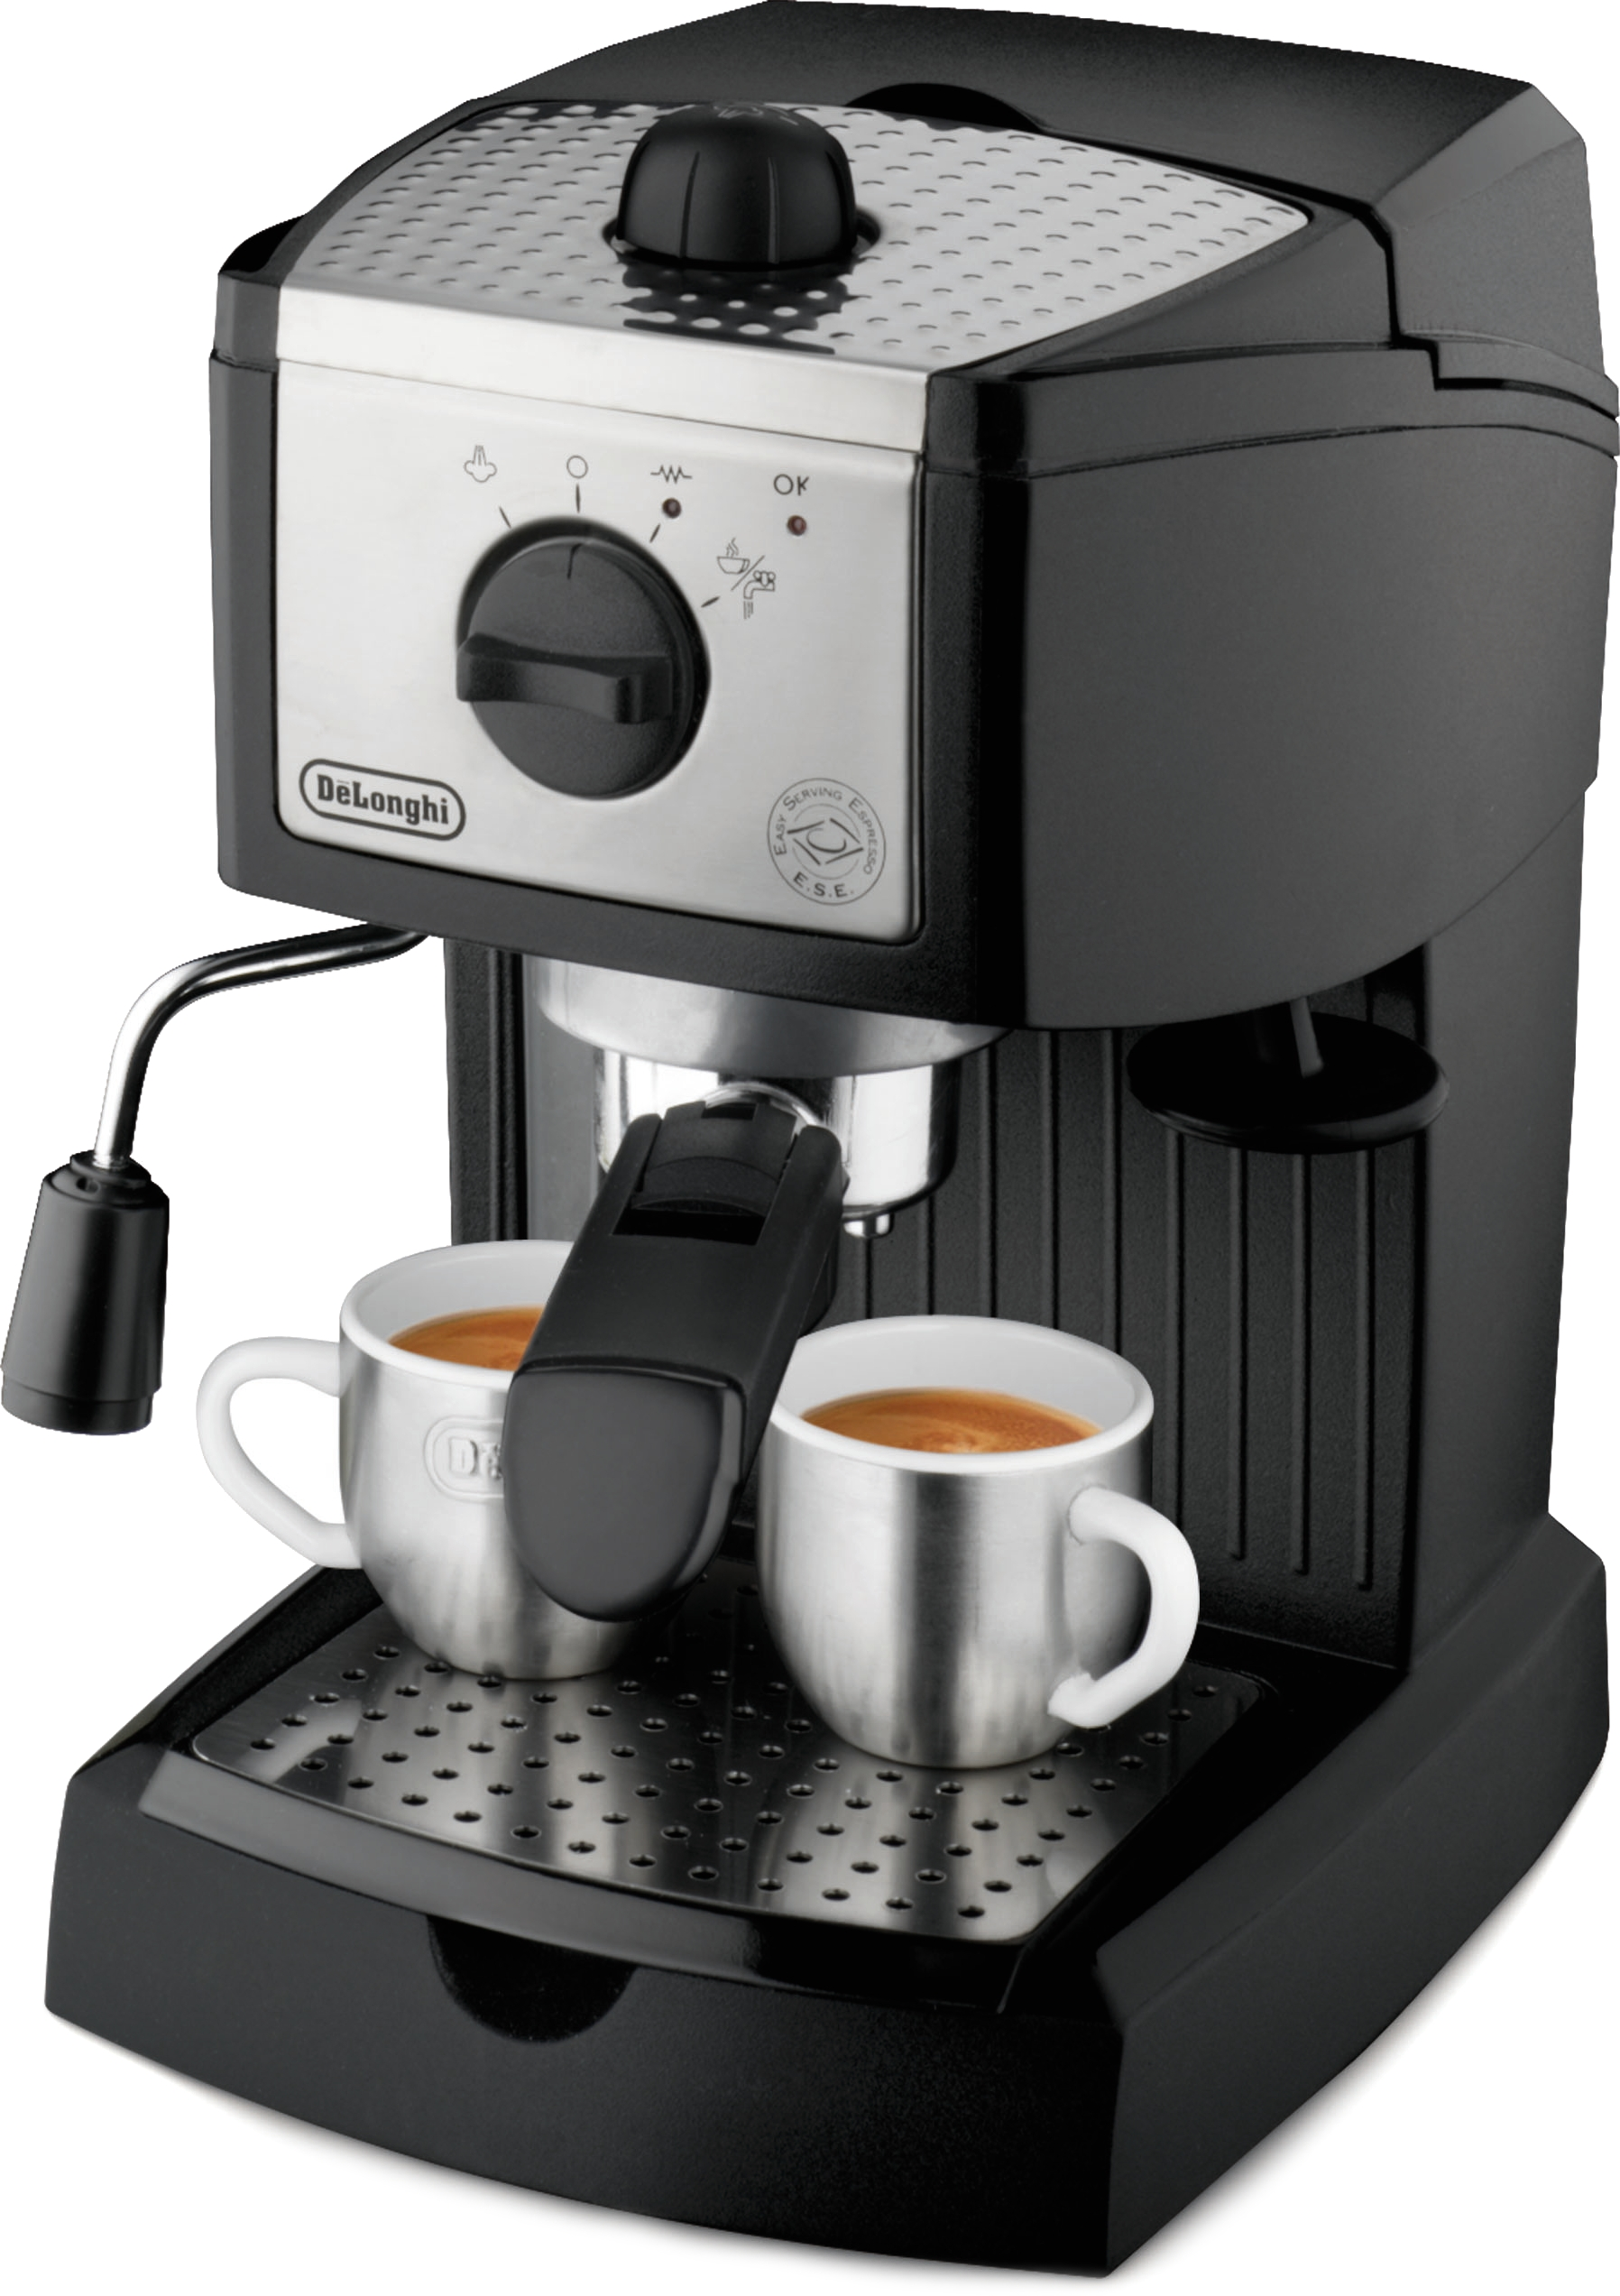 DeLonghi Black and Silver Pump Driven Espresso and Cappuccino Maker